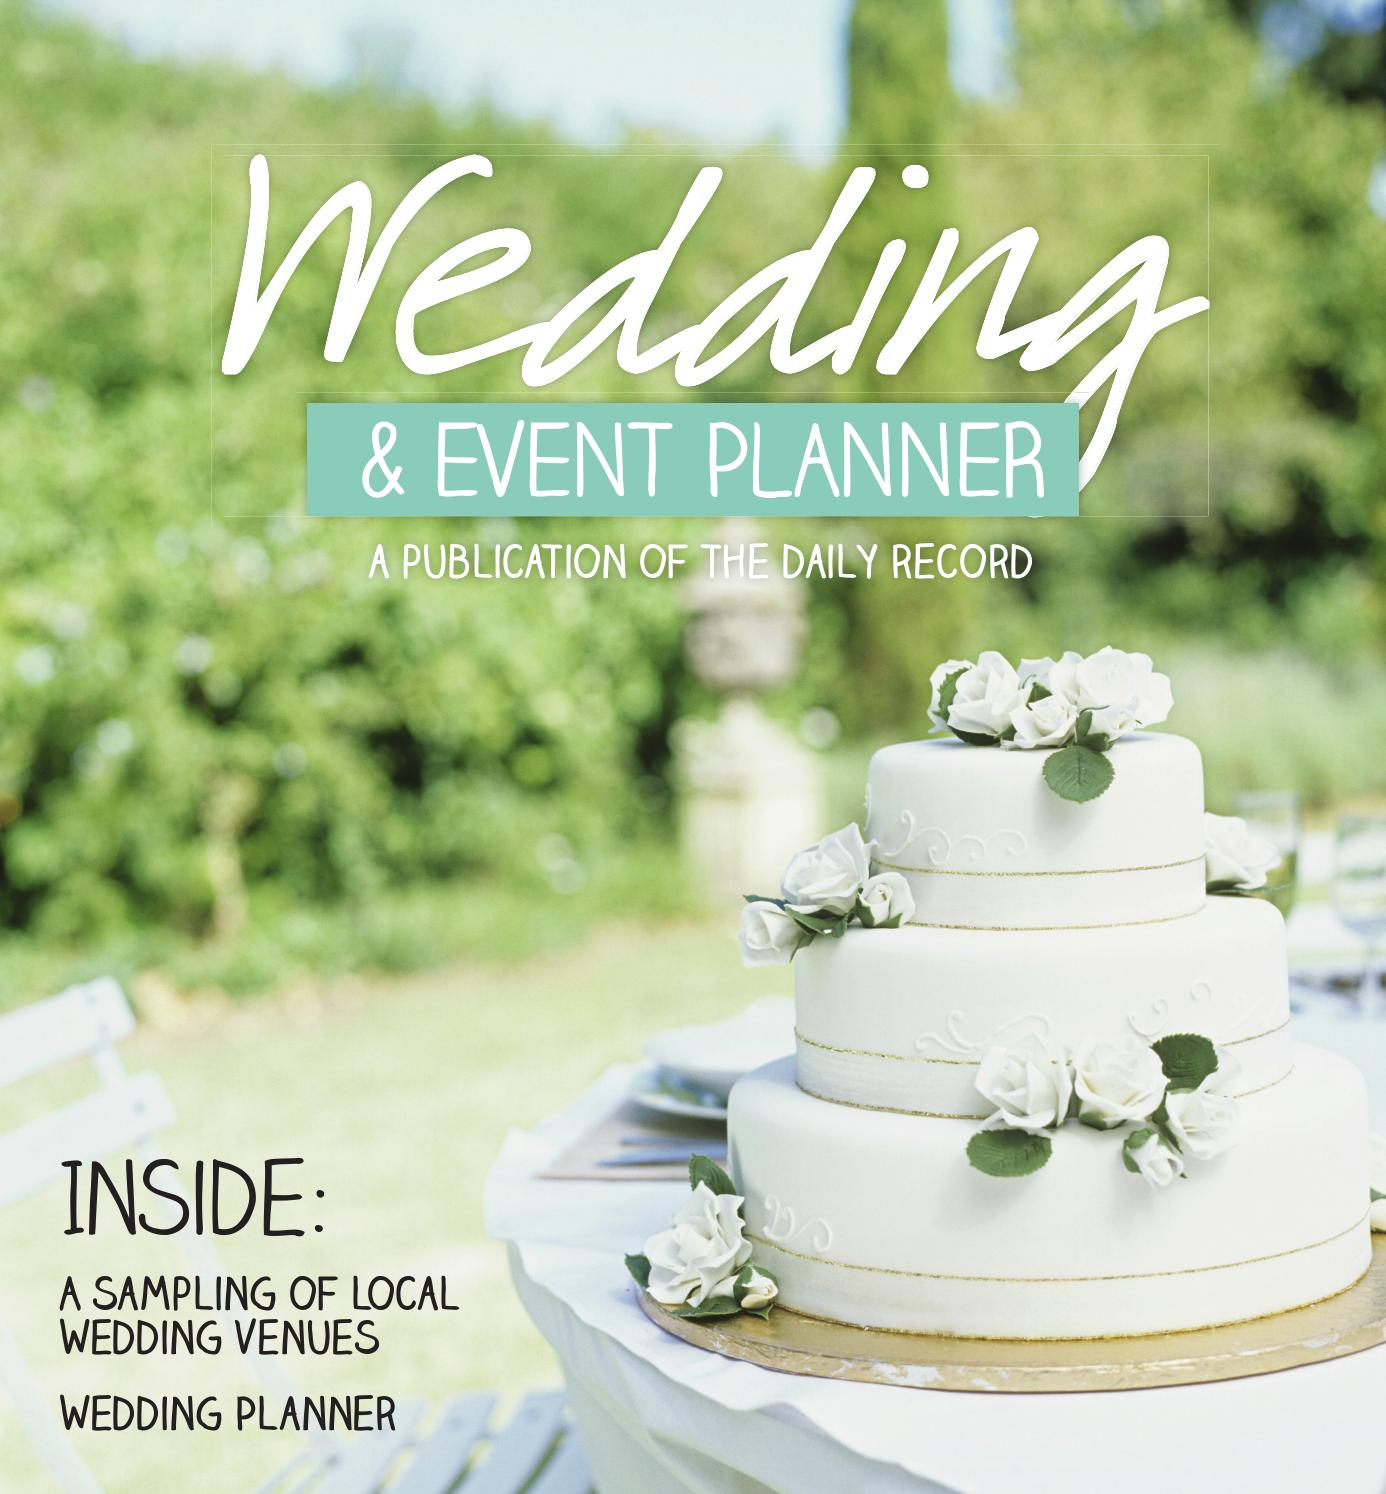 2015 Wedding Event Planner By Daily Record Issuu